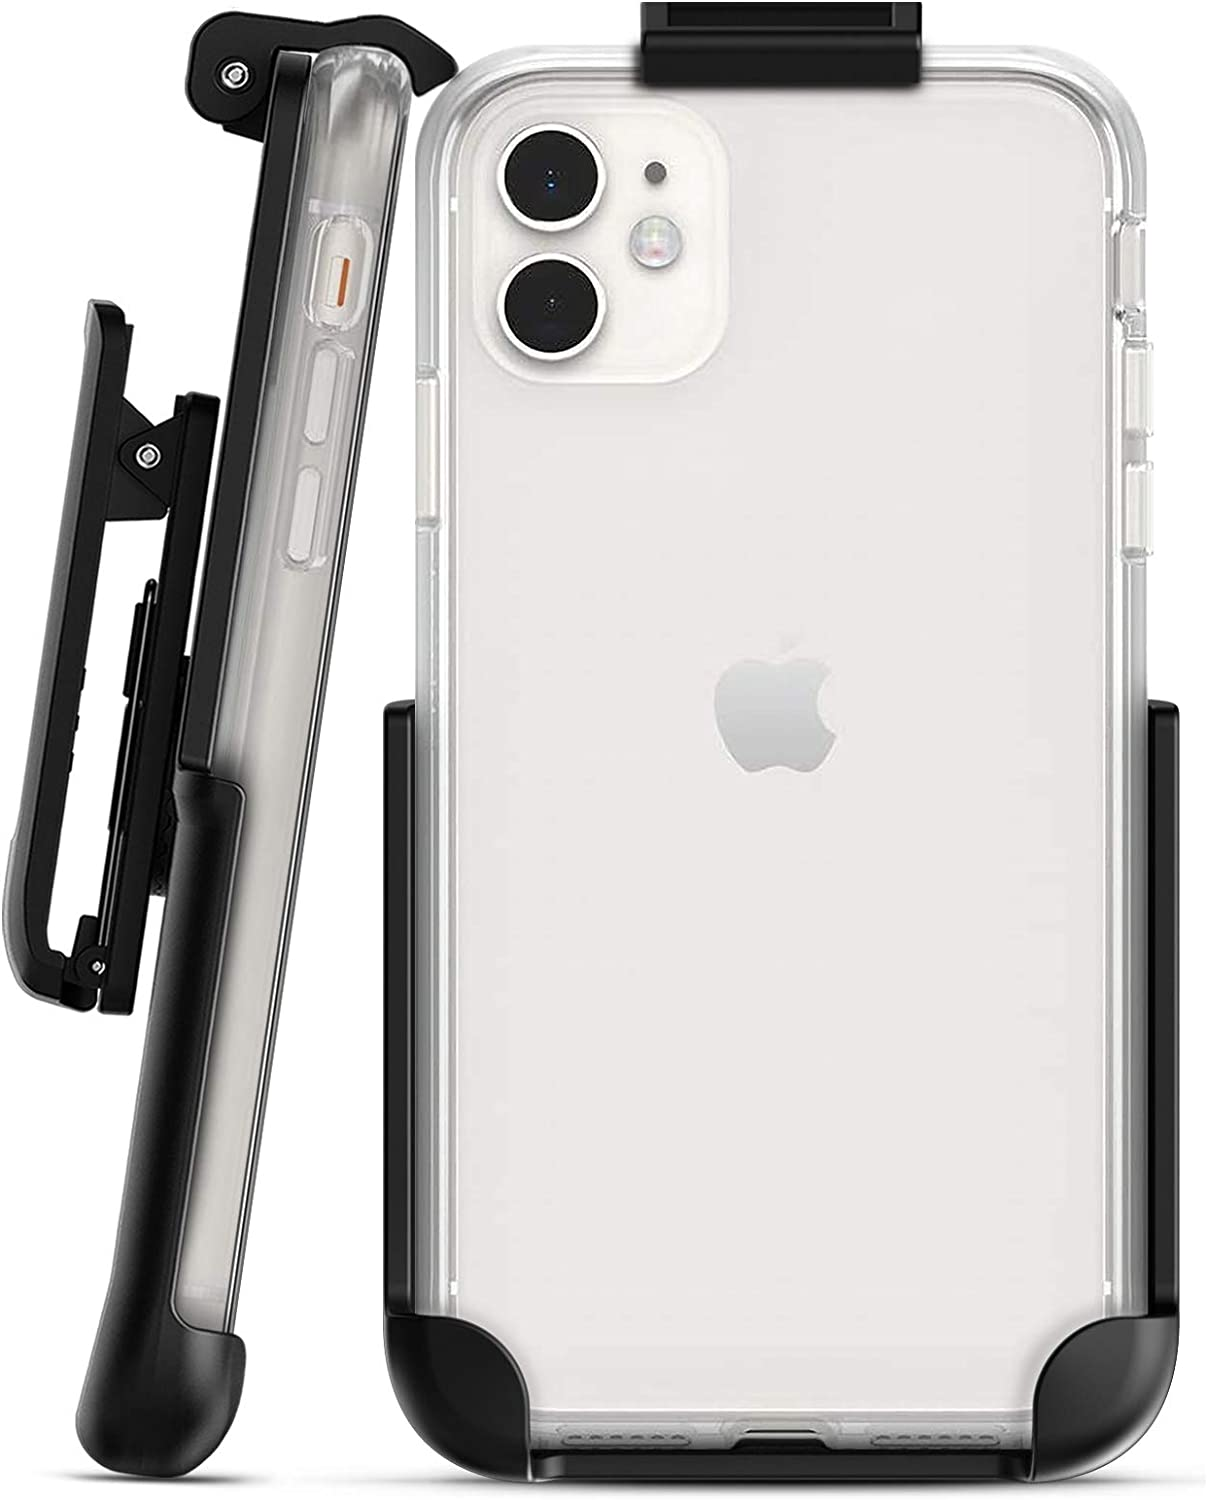 Encased Belt Clip Holster for Otterbox Prefix Case - iPhone 11 (Holster Only - Case is not Included)